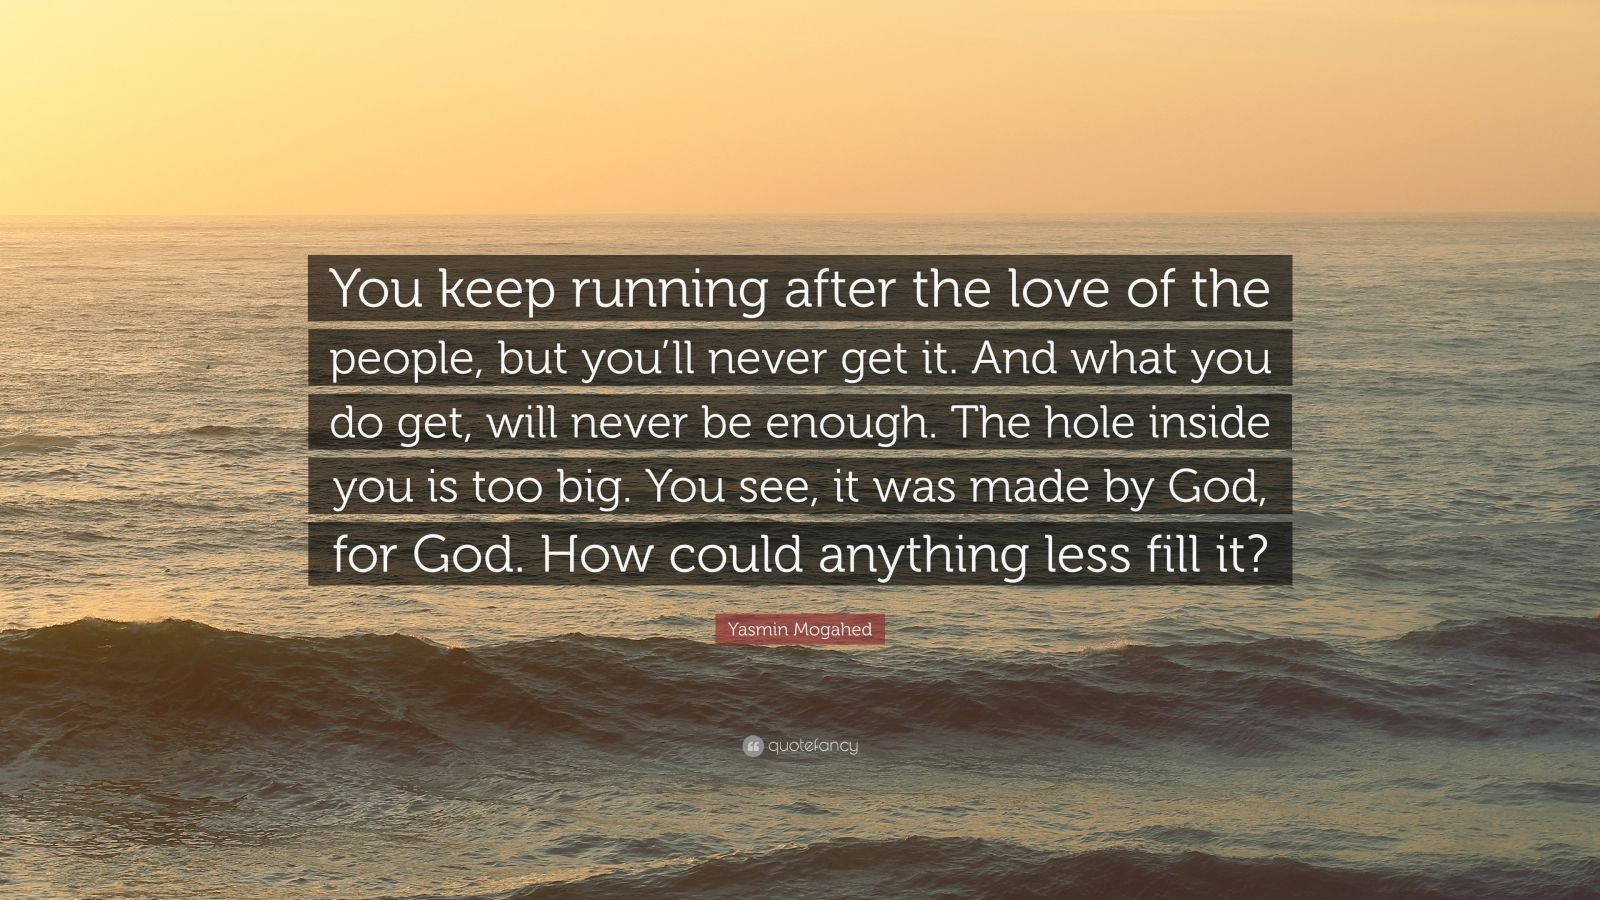 "Yasmin Mogahed Quote: ""You keep running after the love of the people, but you'll never get it. And what you do get, will never be enough. The hole inside you is too big. You see, it was made by God, for God. How could anything less fill it?"""